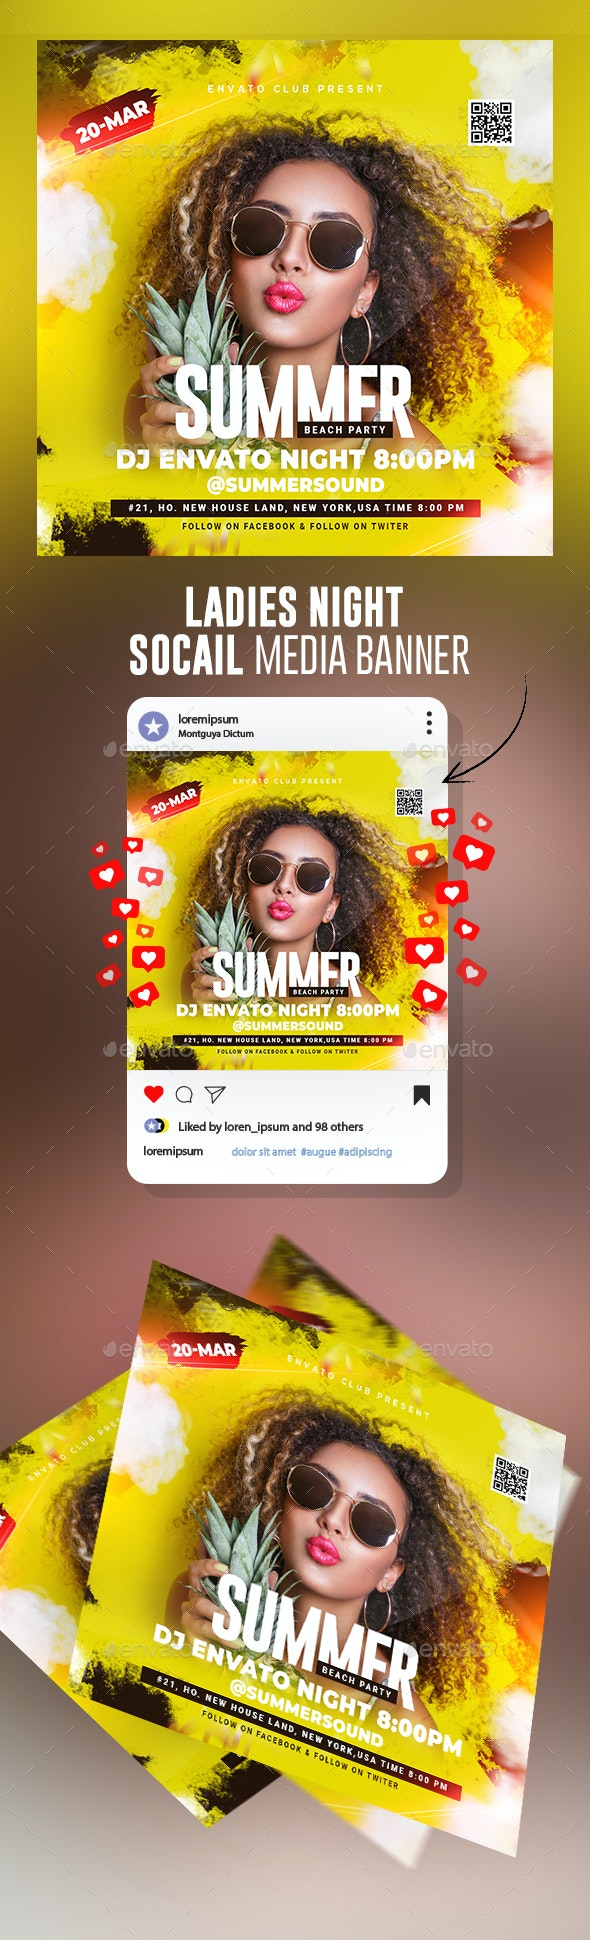 Summer Party Flyer Template - Banners & Ads Web Elements